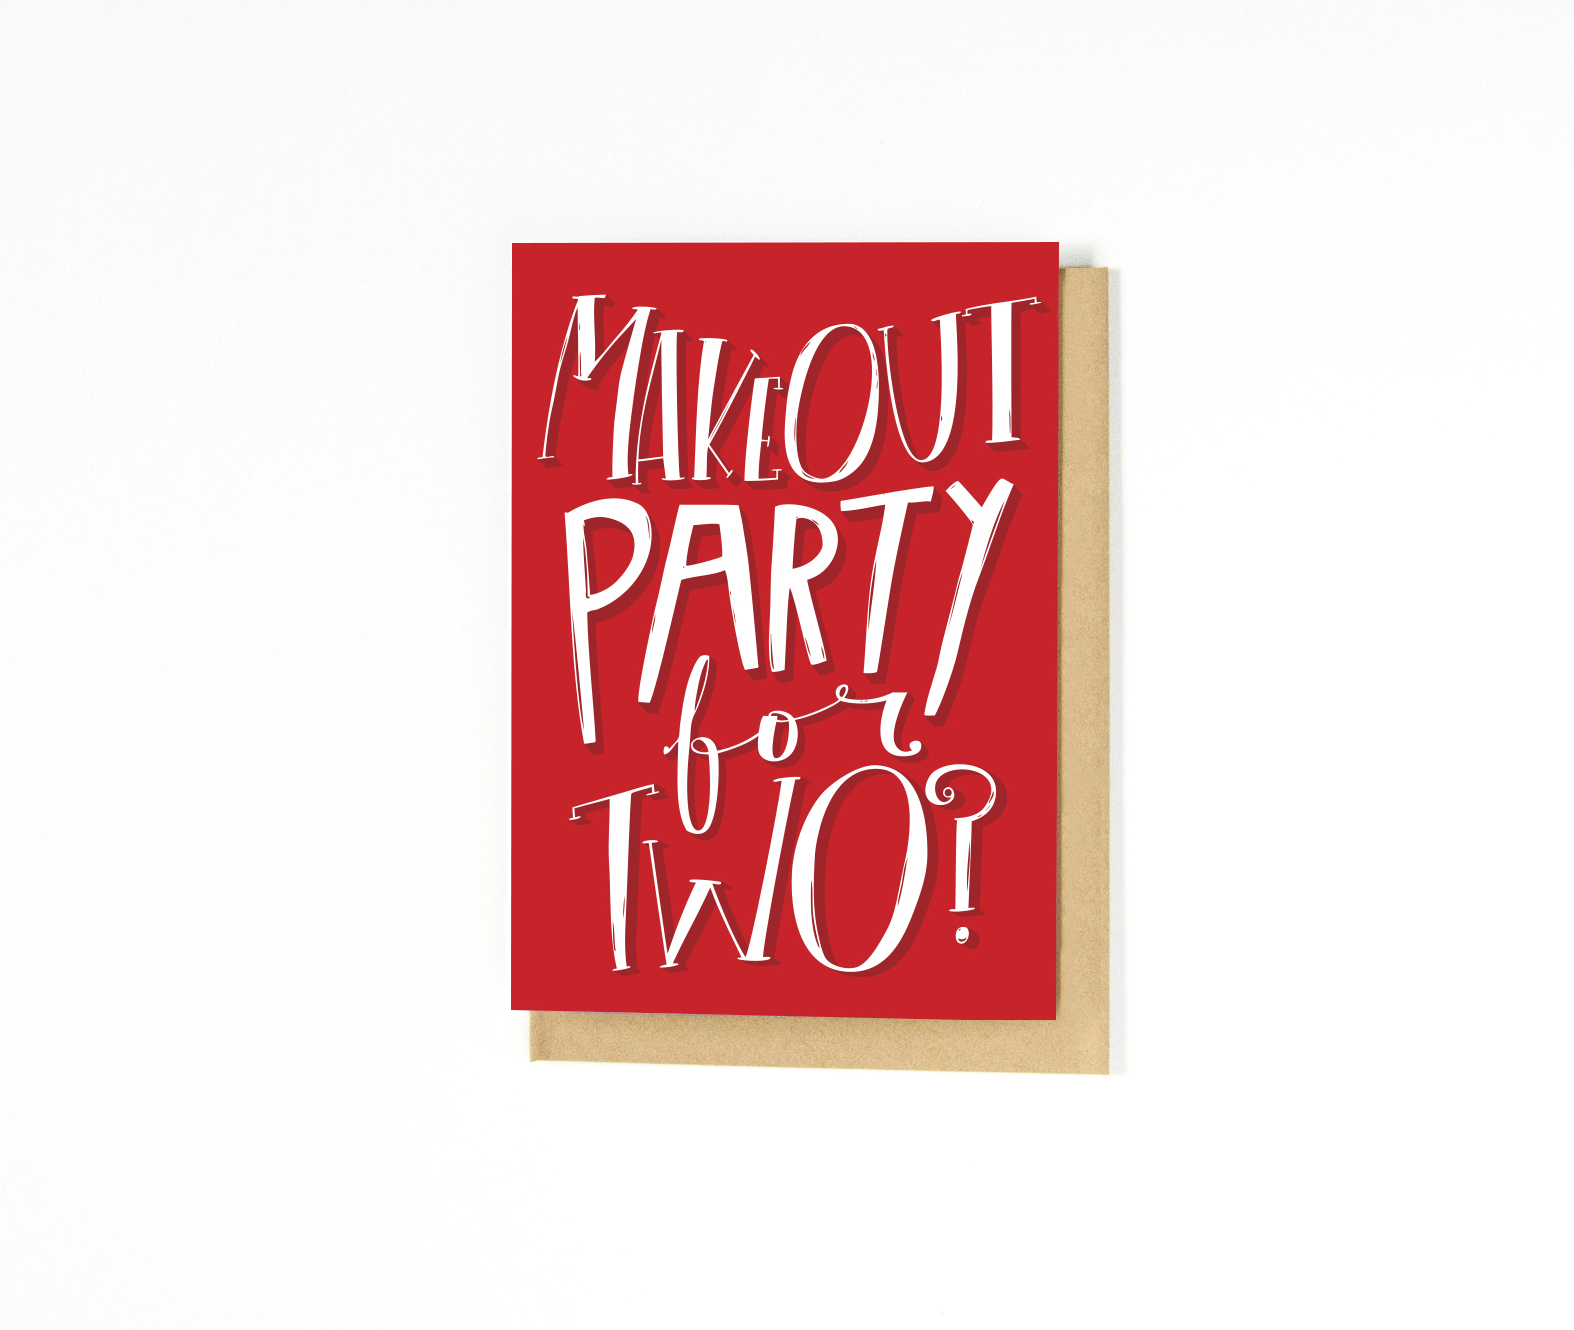 Funny Valentine's Day Greeting Card | Makeout Party